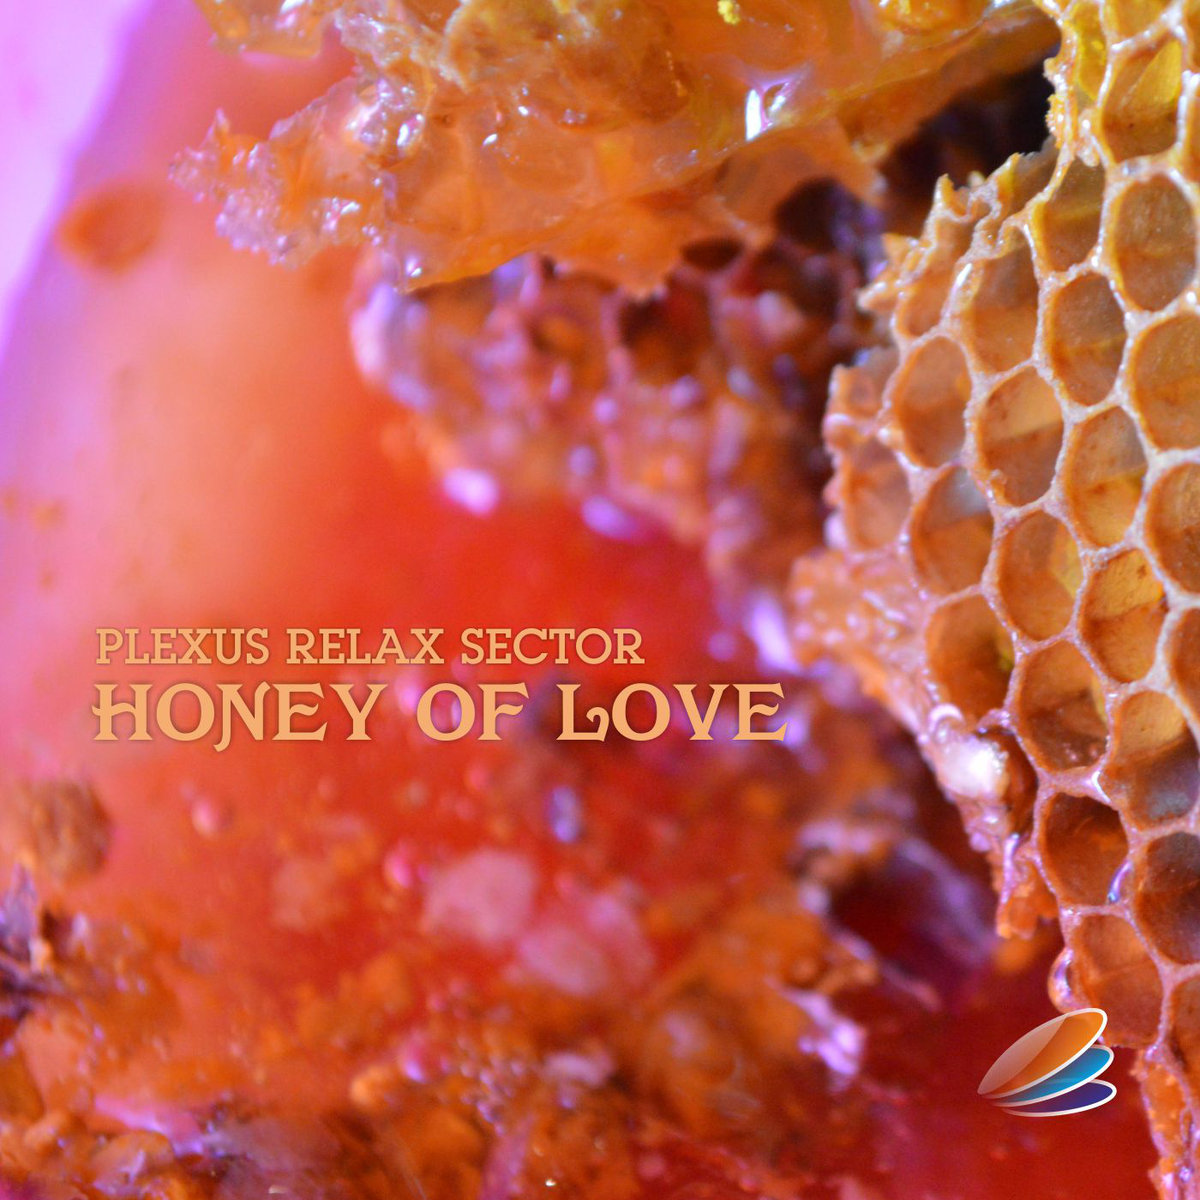 Plexus Relax Sector - Honey Of Love